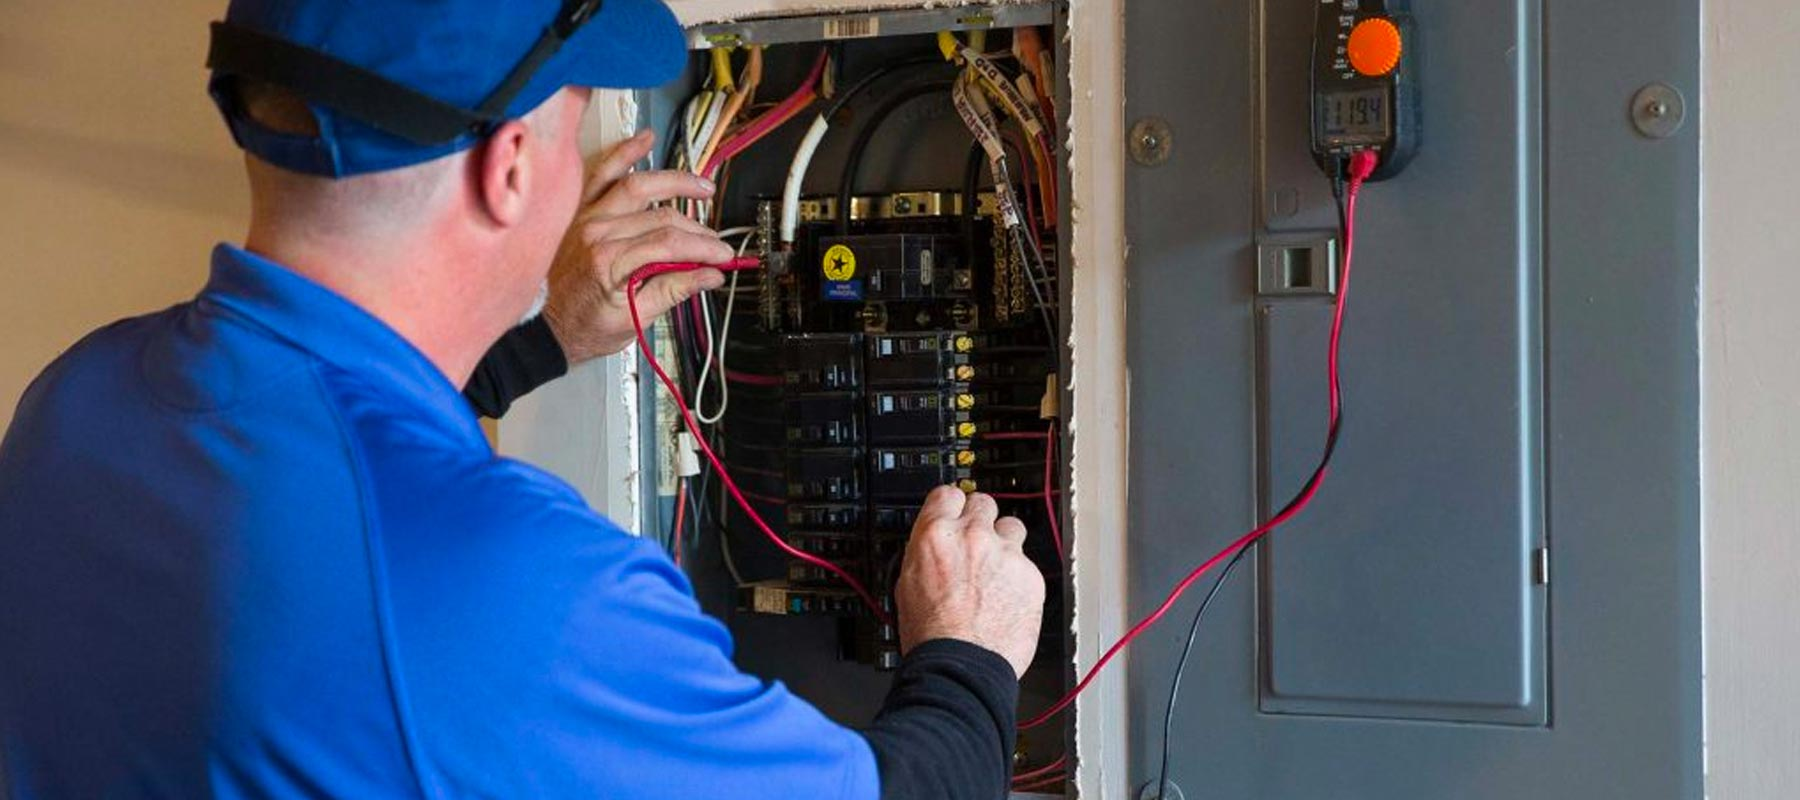 Steps to Maintain Safety House Wiring   US Electrical